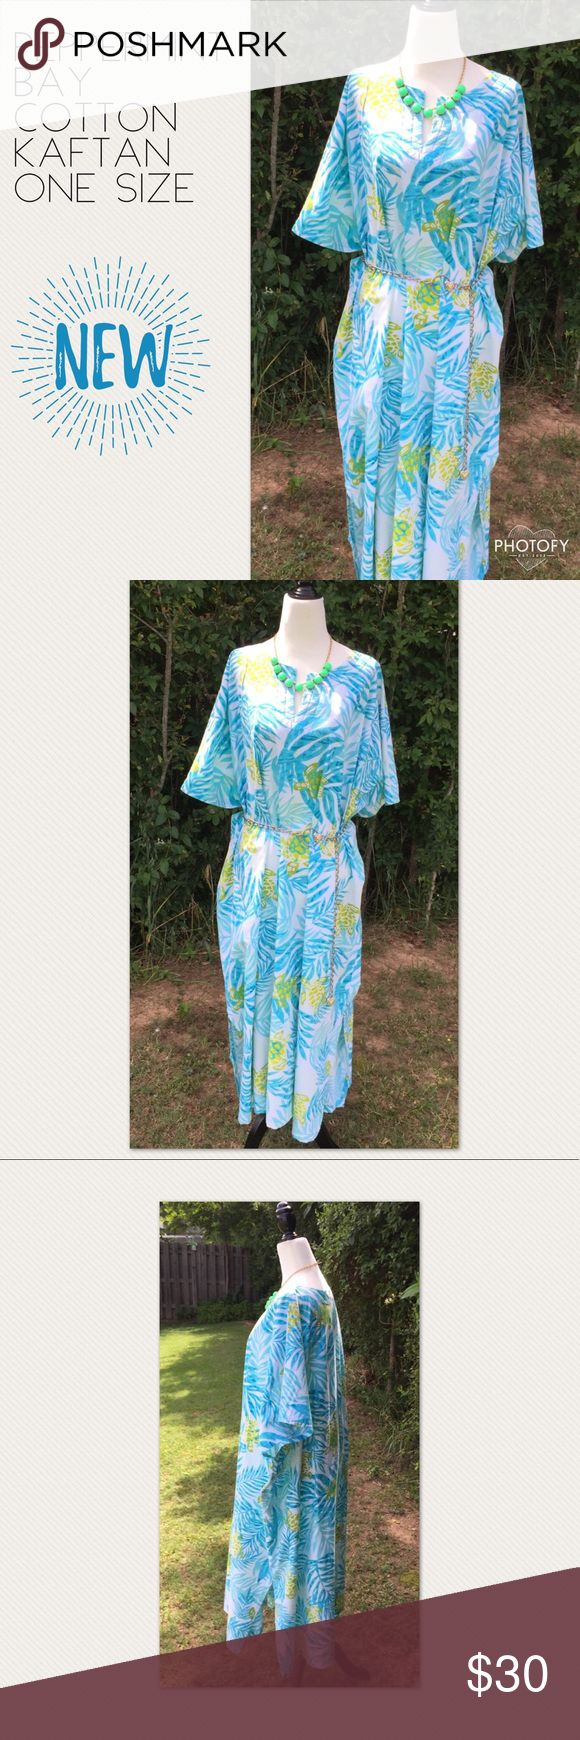 Peppermint Bay Cotton Kaftan - One Size Fits Most Peppermint Bay Cotton Kaftan - One Size Fits Most  Great as a swim cover up for poolside, the beach or wear when lounging around the house   Fabric:  100% Cotton  Colors: Tropical turquoise, aqua and lime